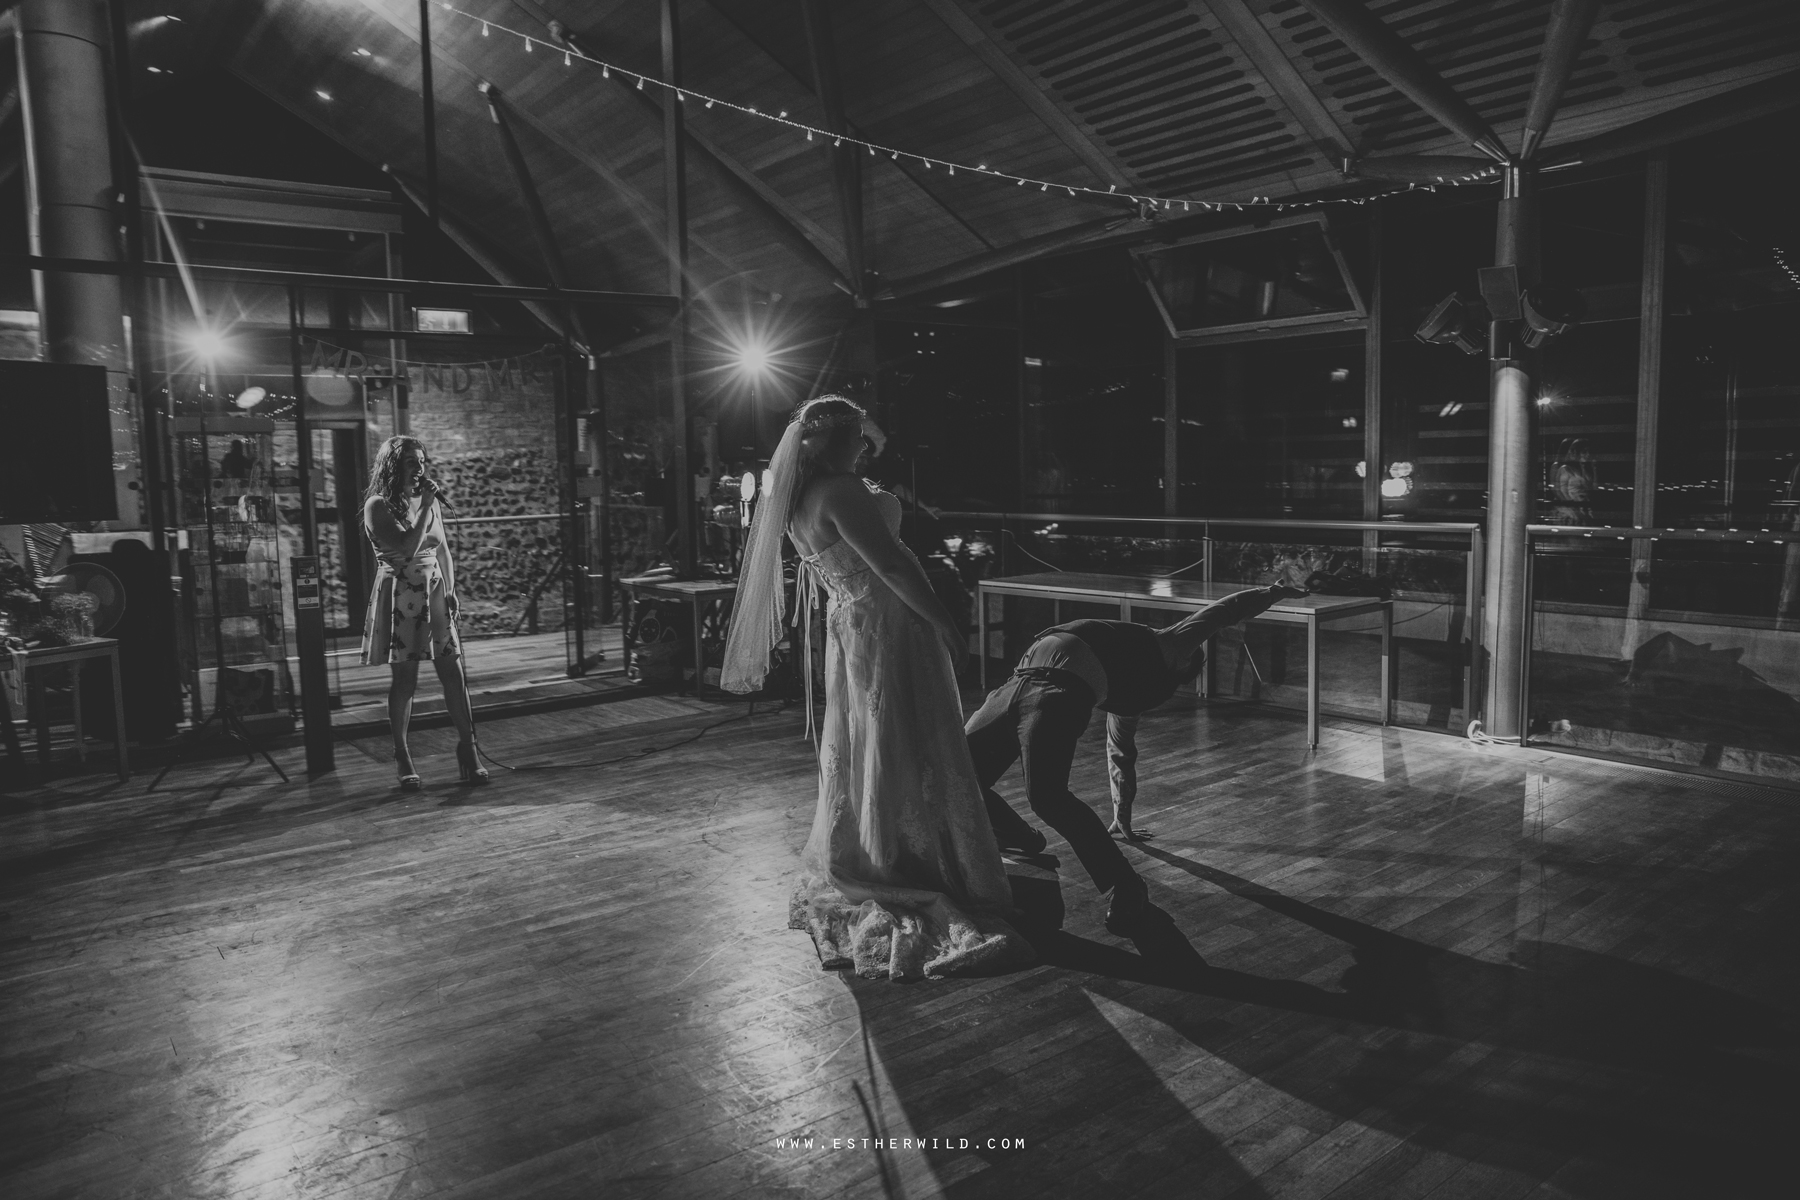 Norwich_Castle_Arcade_Grosvenor_Chip_Birdcage_Cathedral_Cloisters_Refectory_Wedding_Photography_Esther_Wild_Photographer_Norfolk_Kings_Lynn_3R8A3248-2.jpg